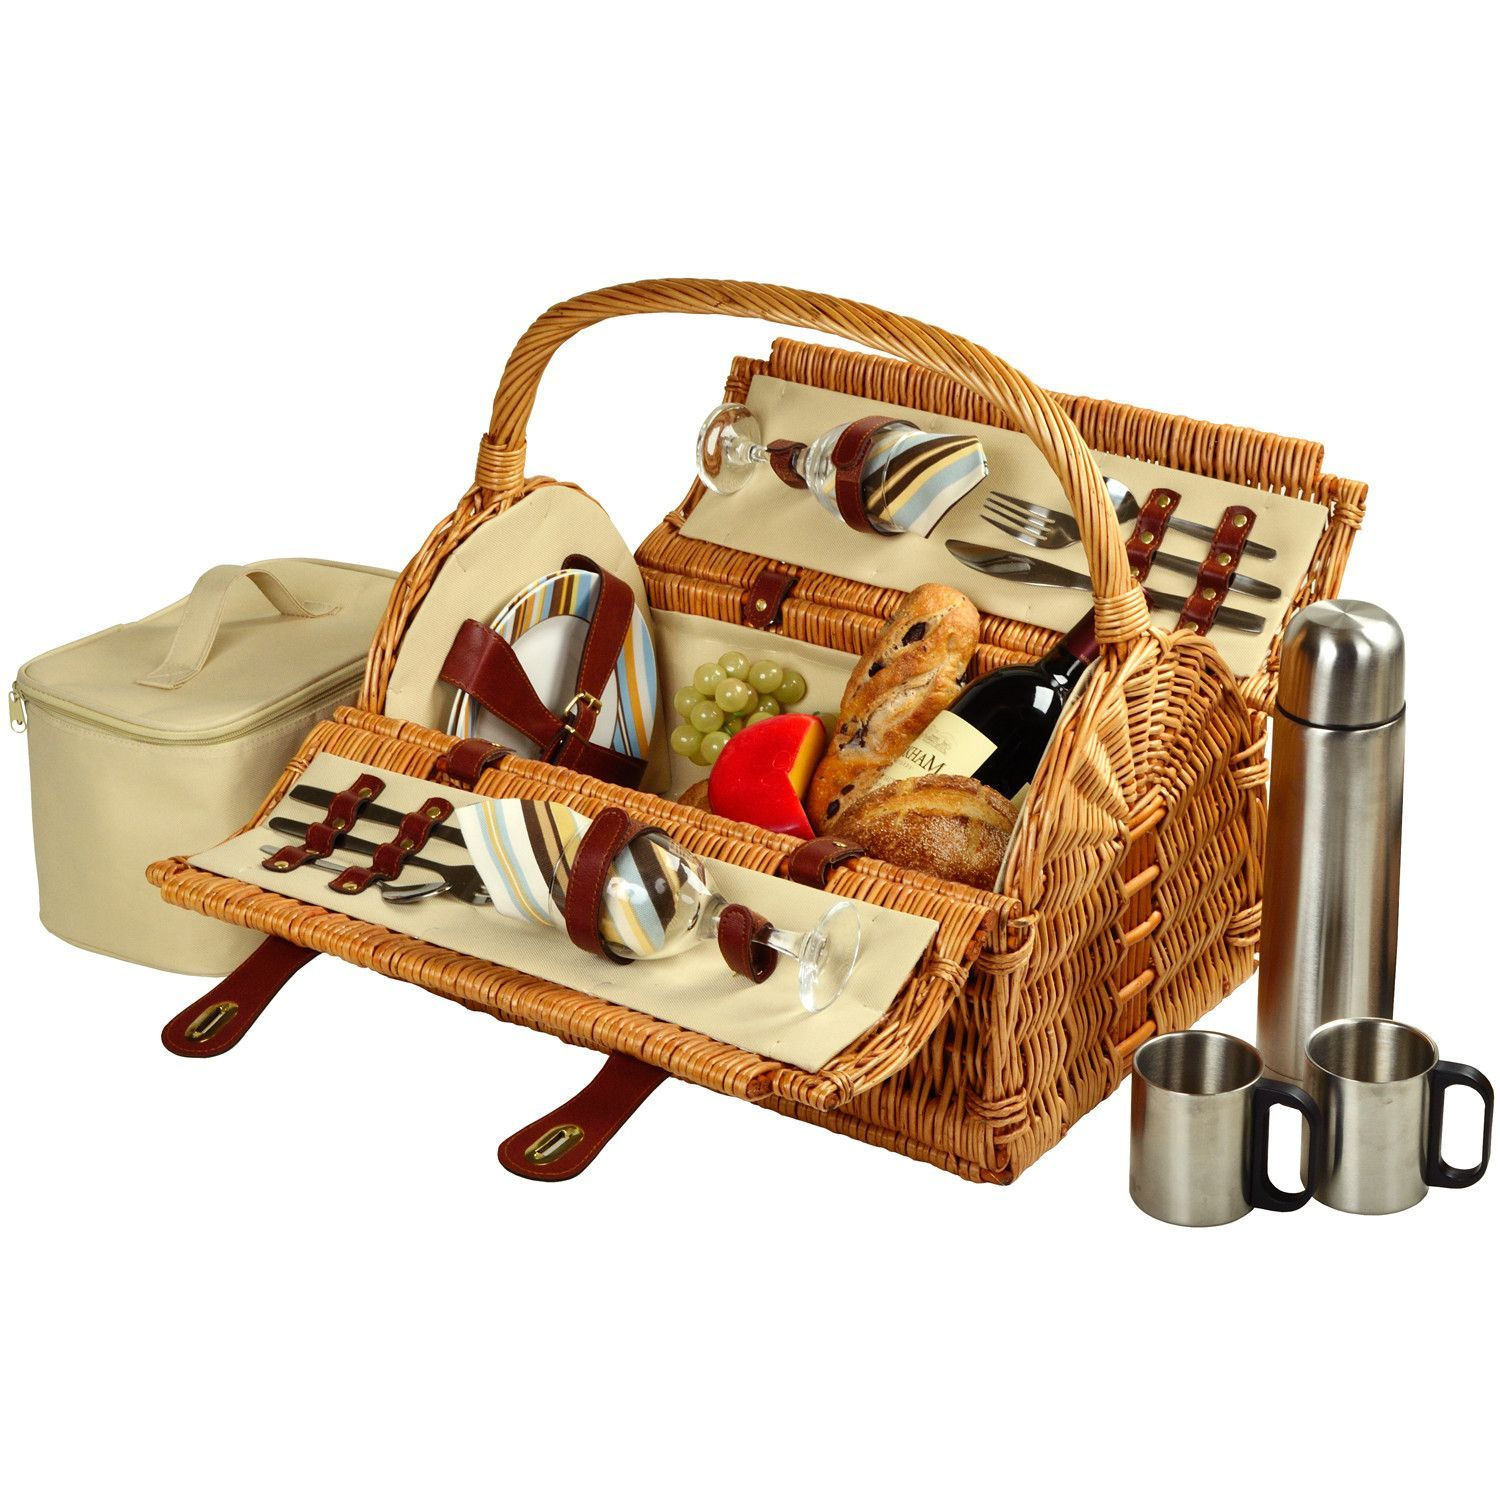 Sussex Picnic Basket with Coffee Flask for Two Wicker